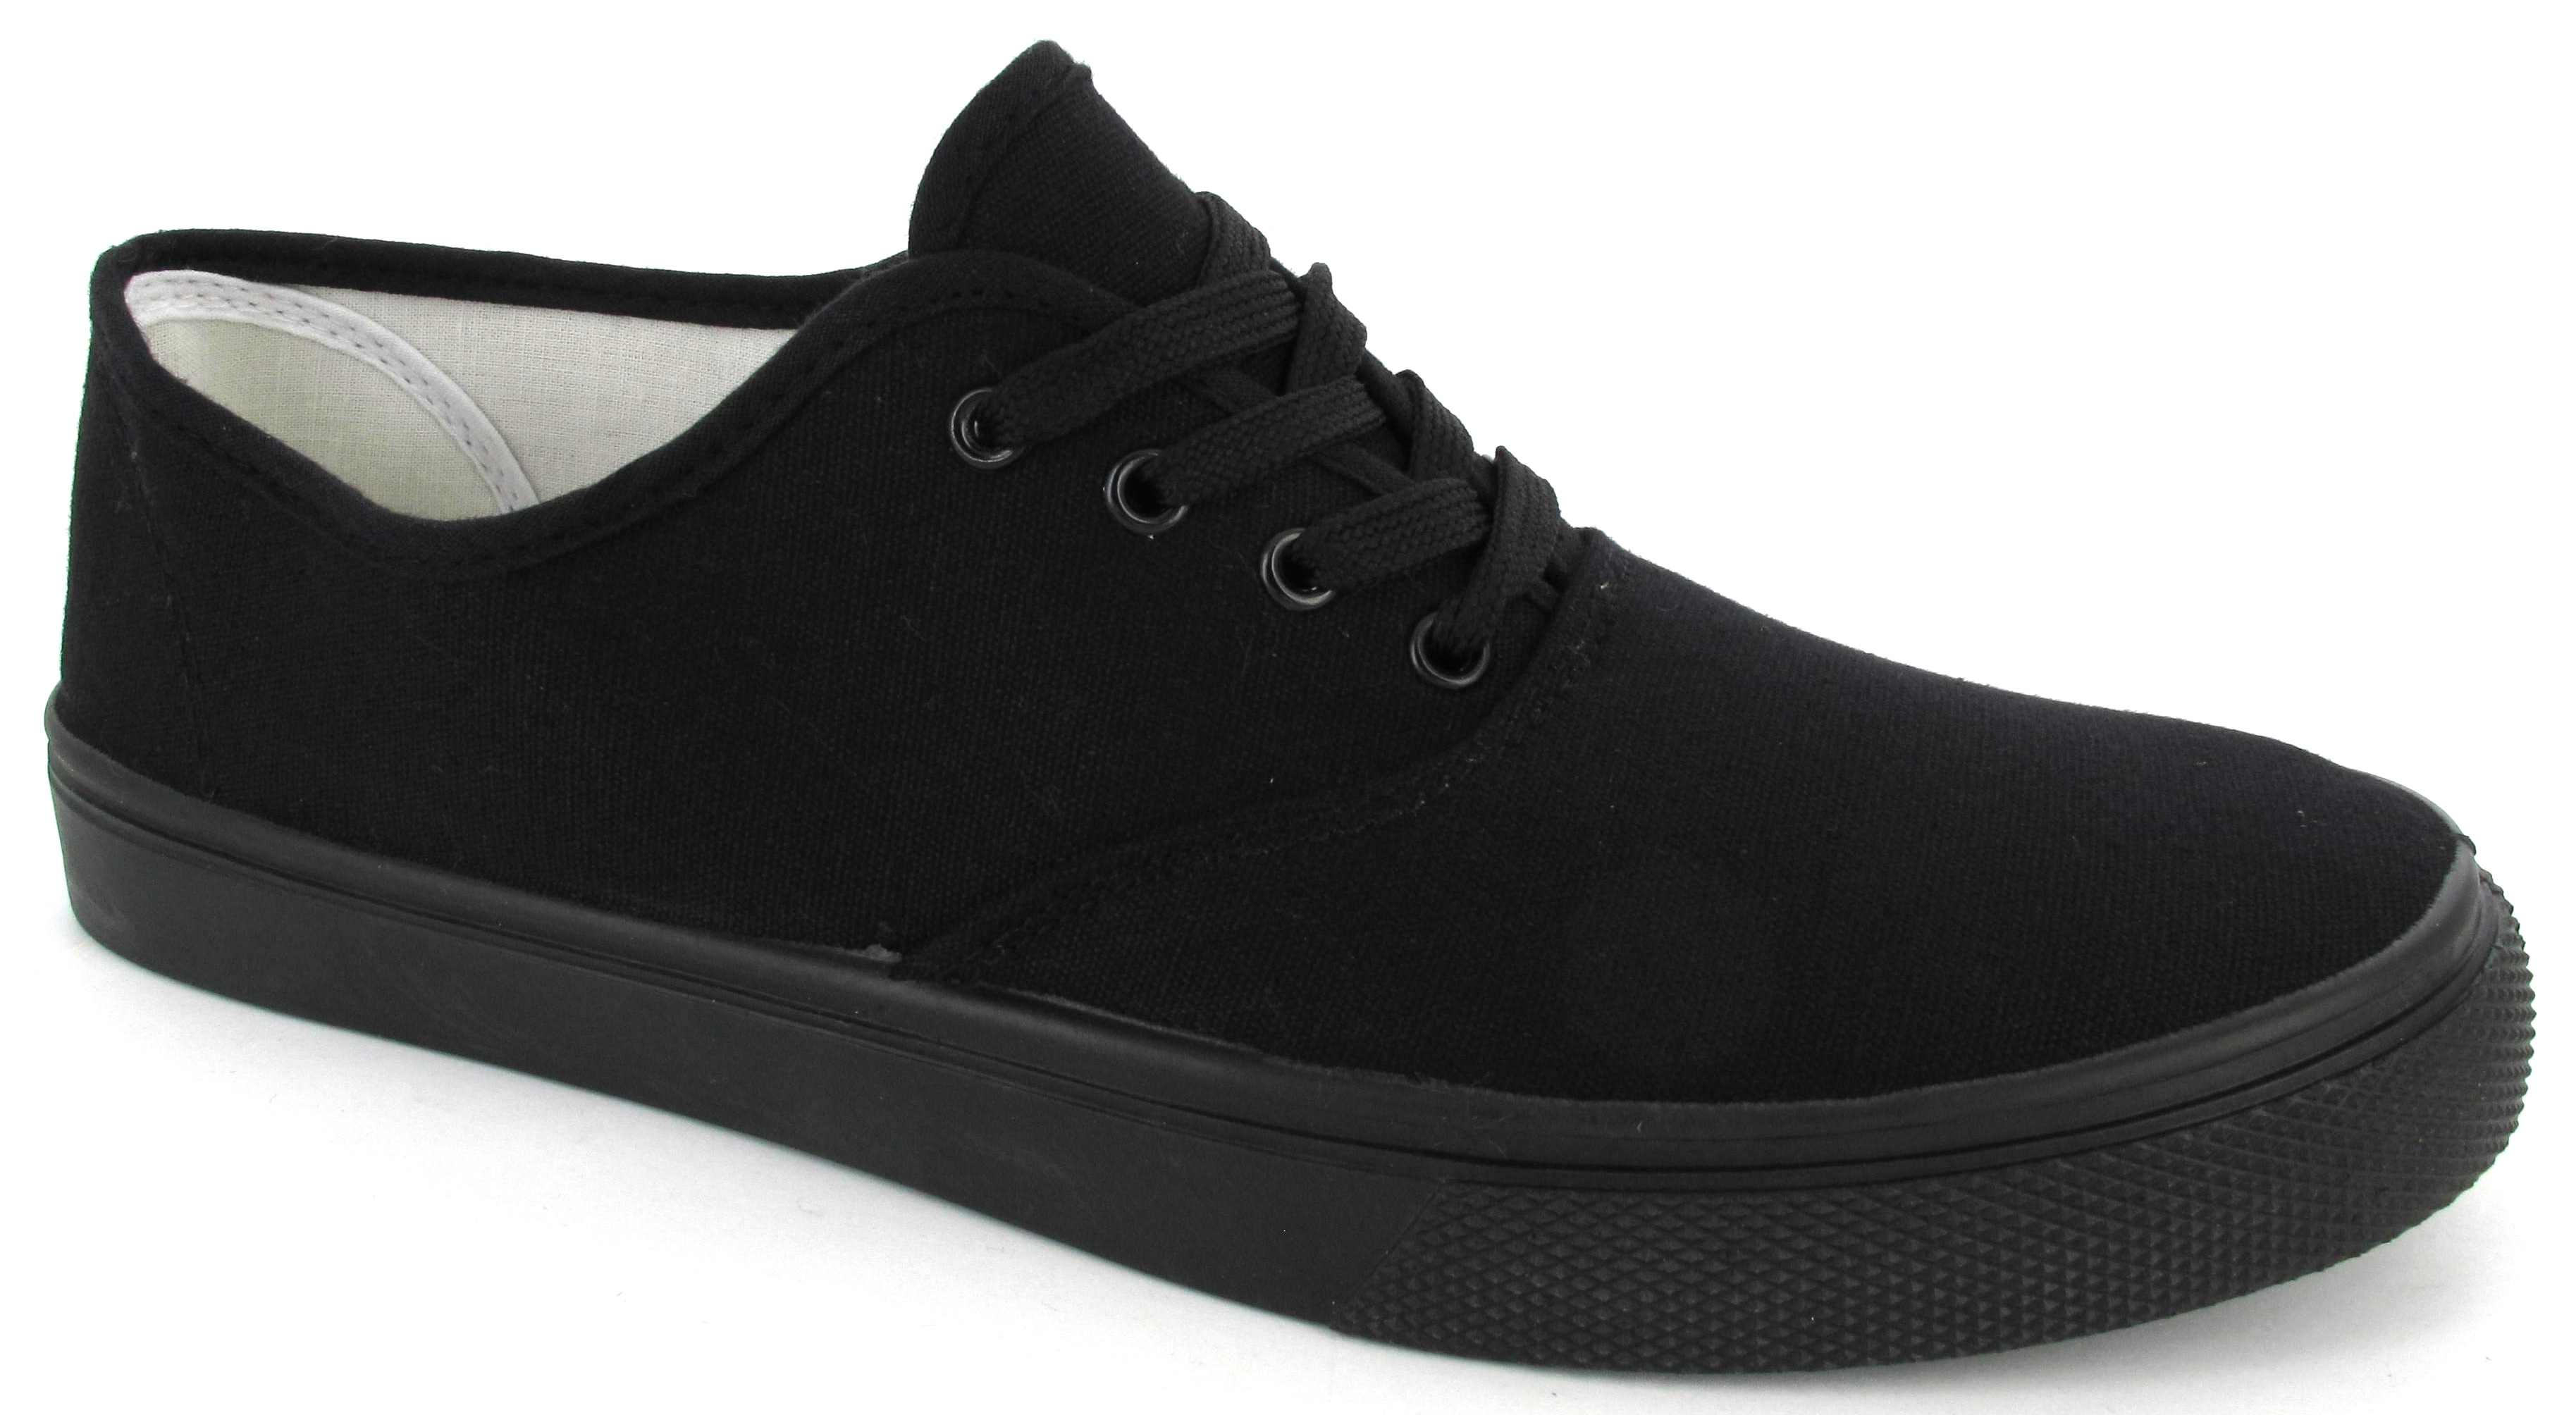 Converse Mens plimsolls sale now on with up to 70% off! Huge discounts from the biggest online sales & clearance outlet.